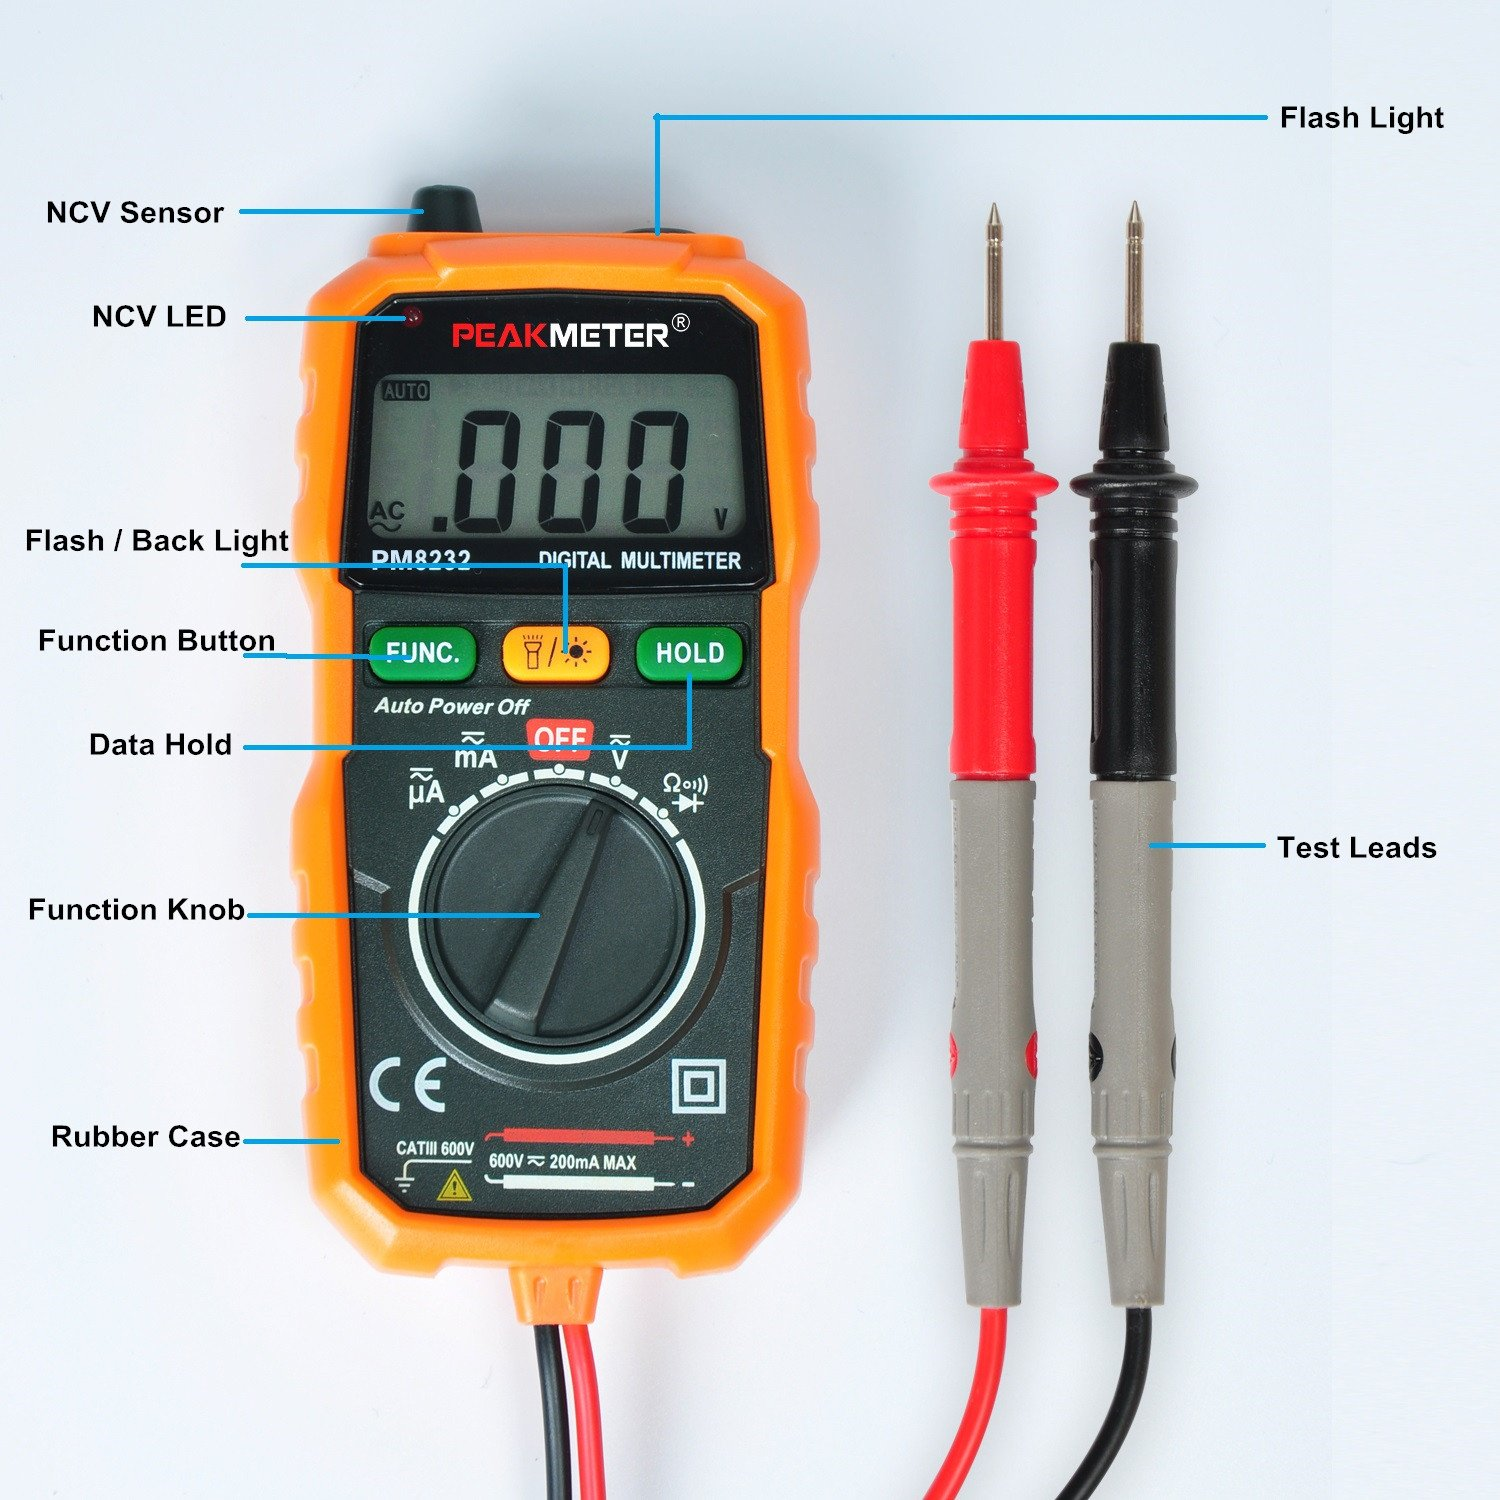 Amazon com innova 3320 auto ranging digital multimeter automotive - Digital Multimeter Peakmeter Pm8232 Mini Auto Ranging Digital Multimeter Smart Dmm Resistance Test Meter Measure Ac Dc Voltage Tester With Test Leads